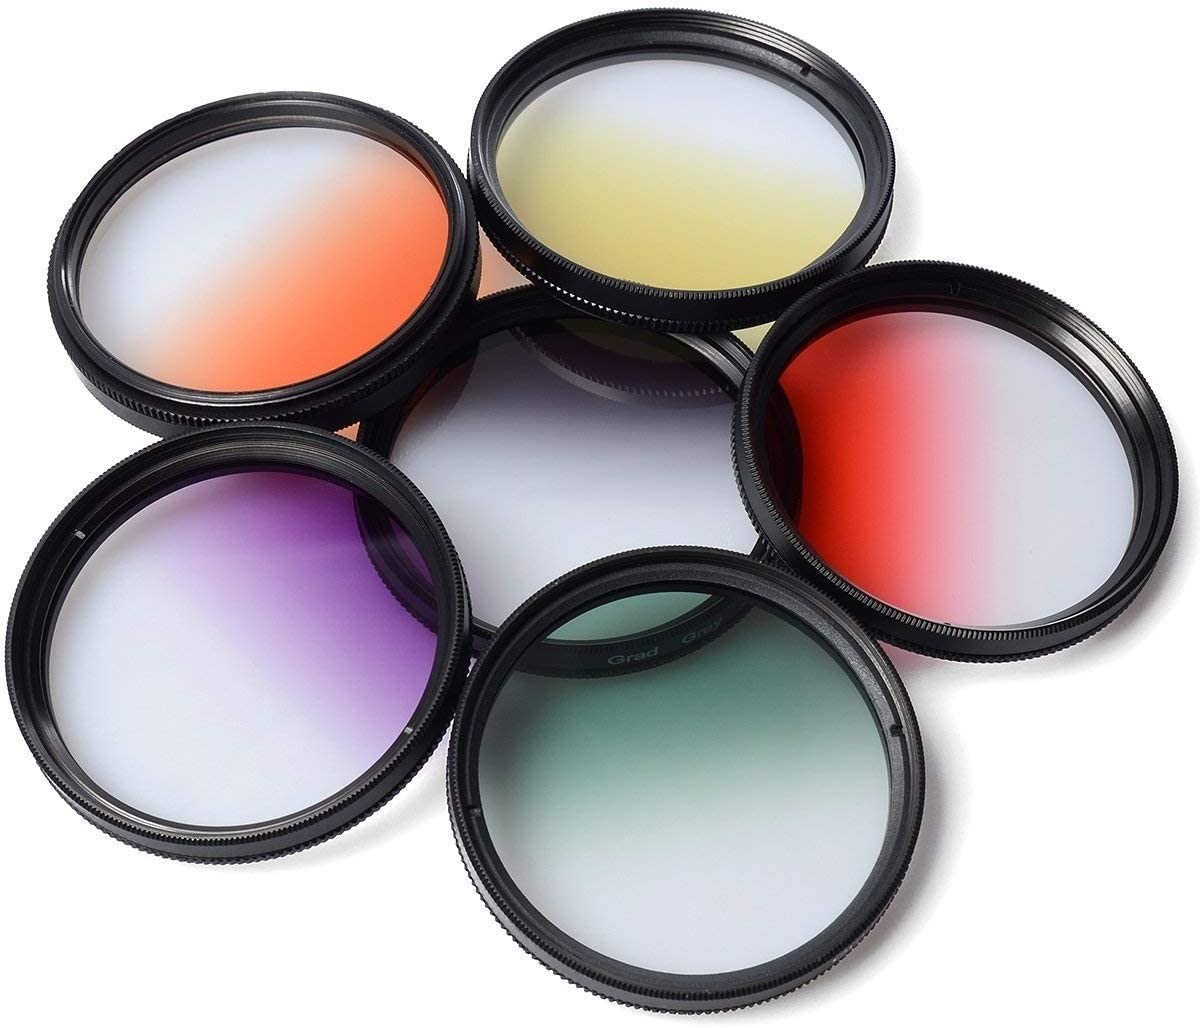 Yunchenghe Set of Color Filters for Camera Lenses Yellow//Gray Blue//Green Purple 72 mm Thread 7 Pieces Includes Orange//Red